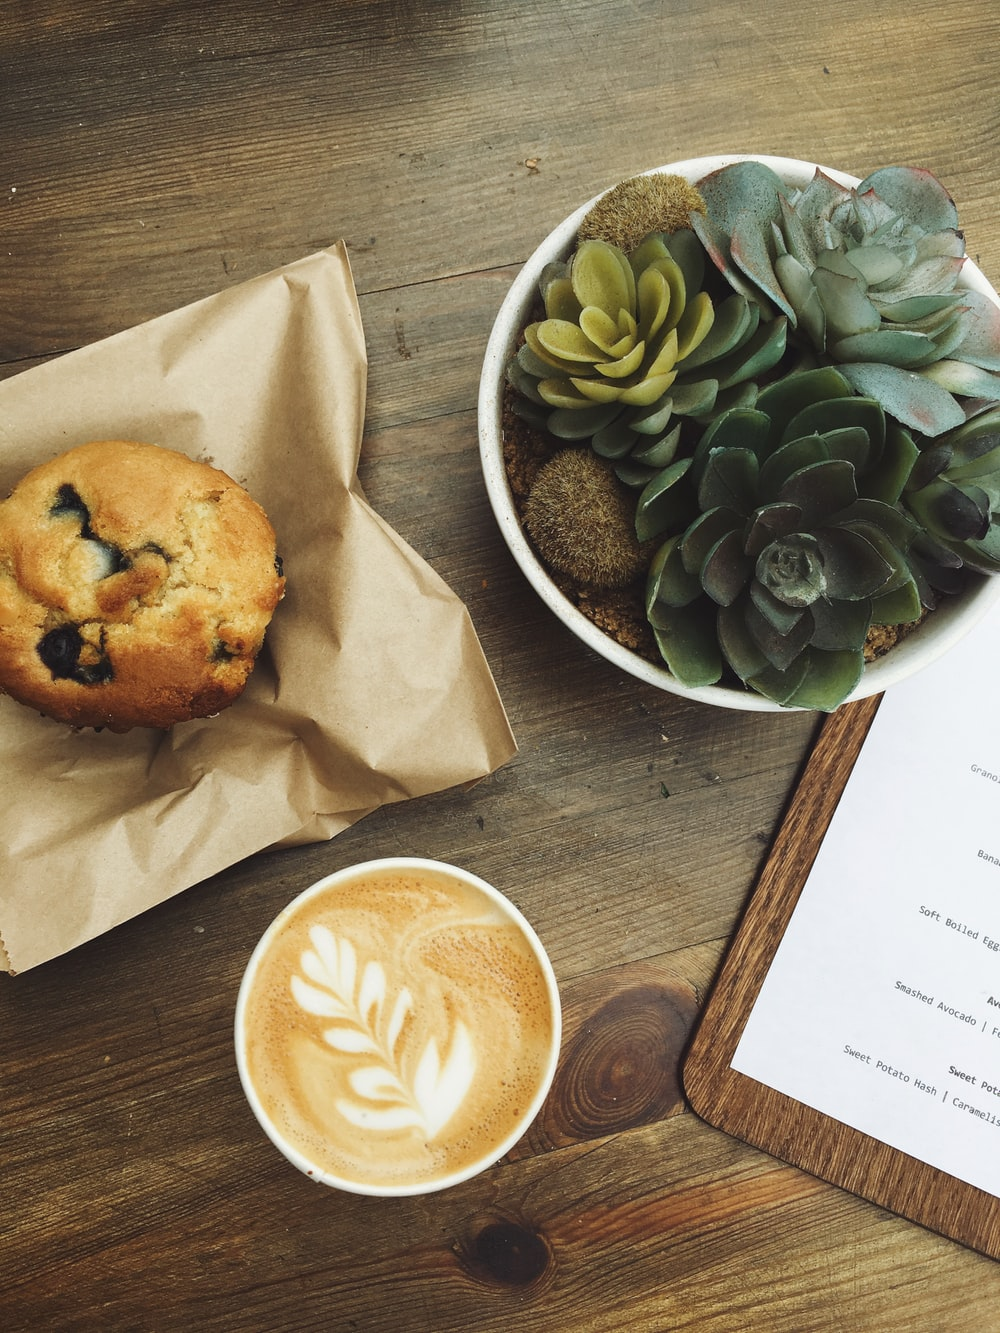 muffin served on brown paper